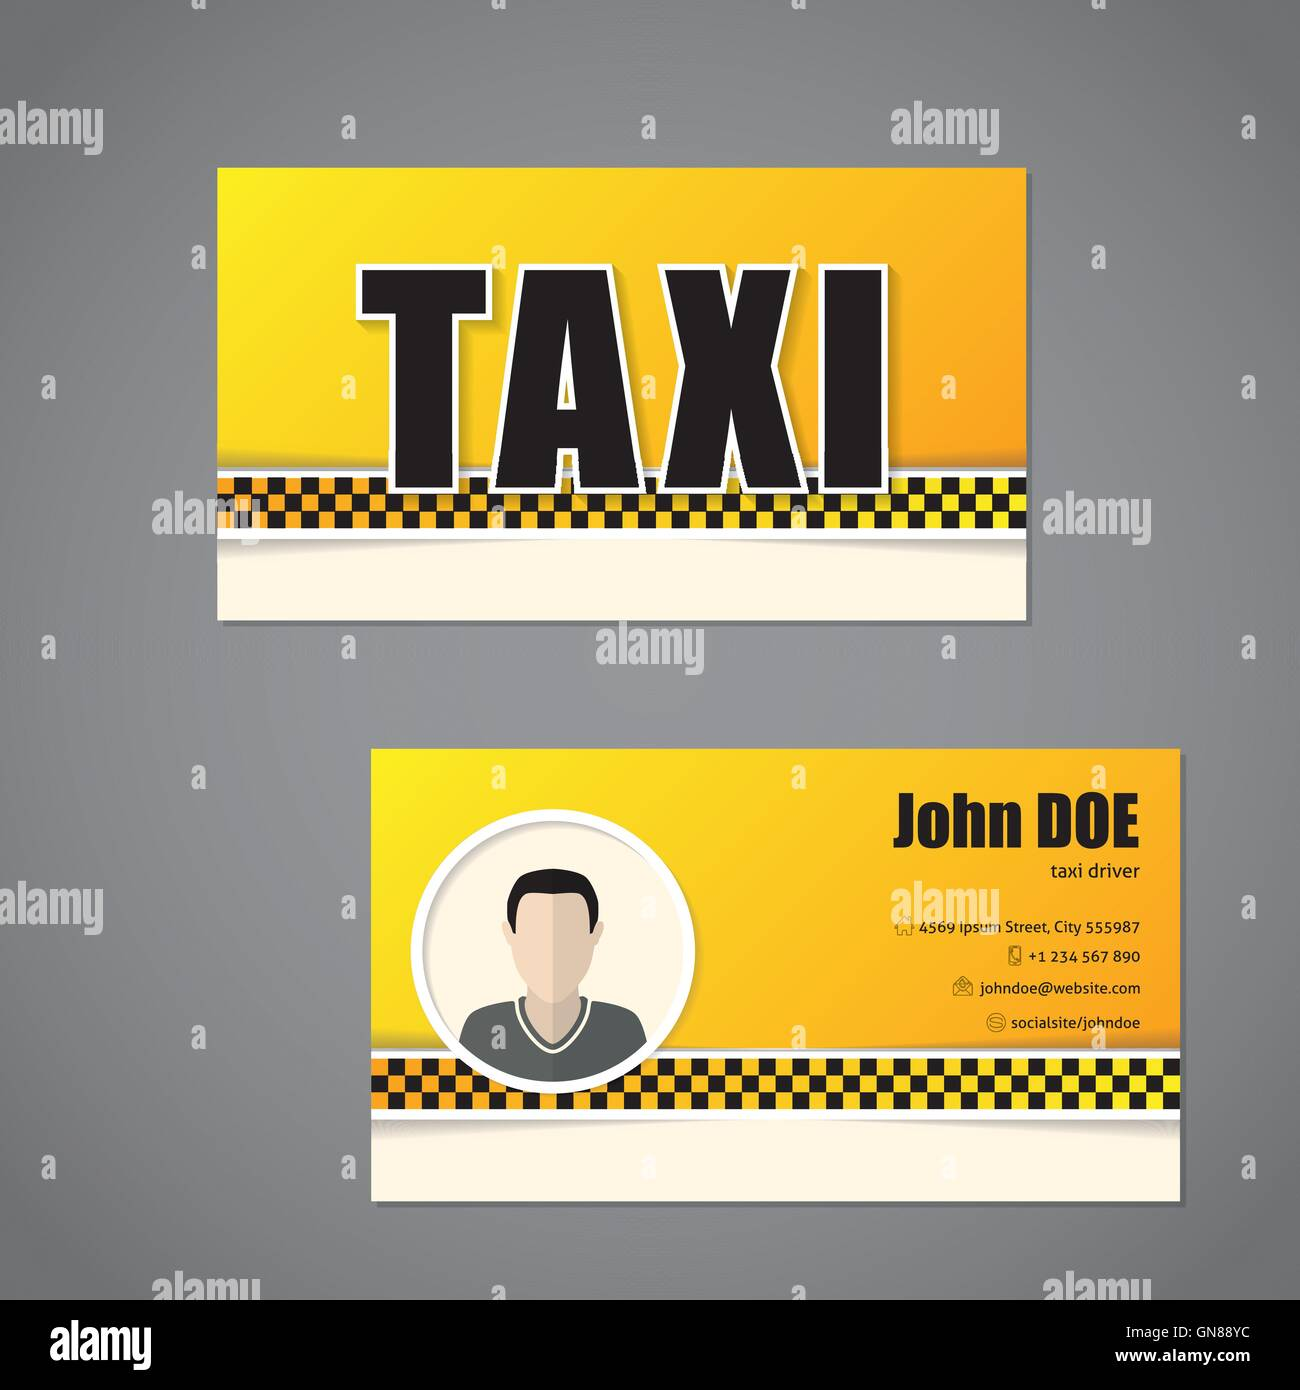 Taxi business card template with driver photo Stock Vector Art ...